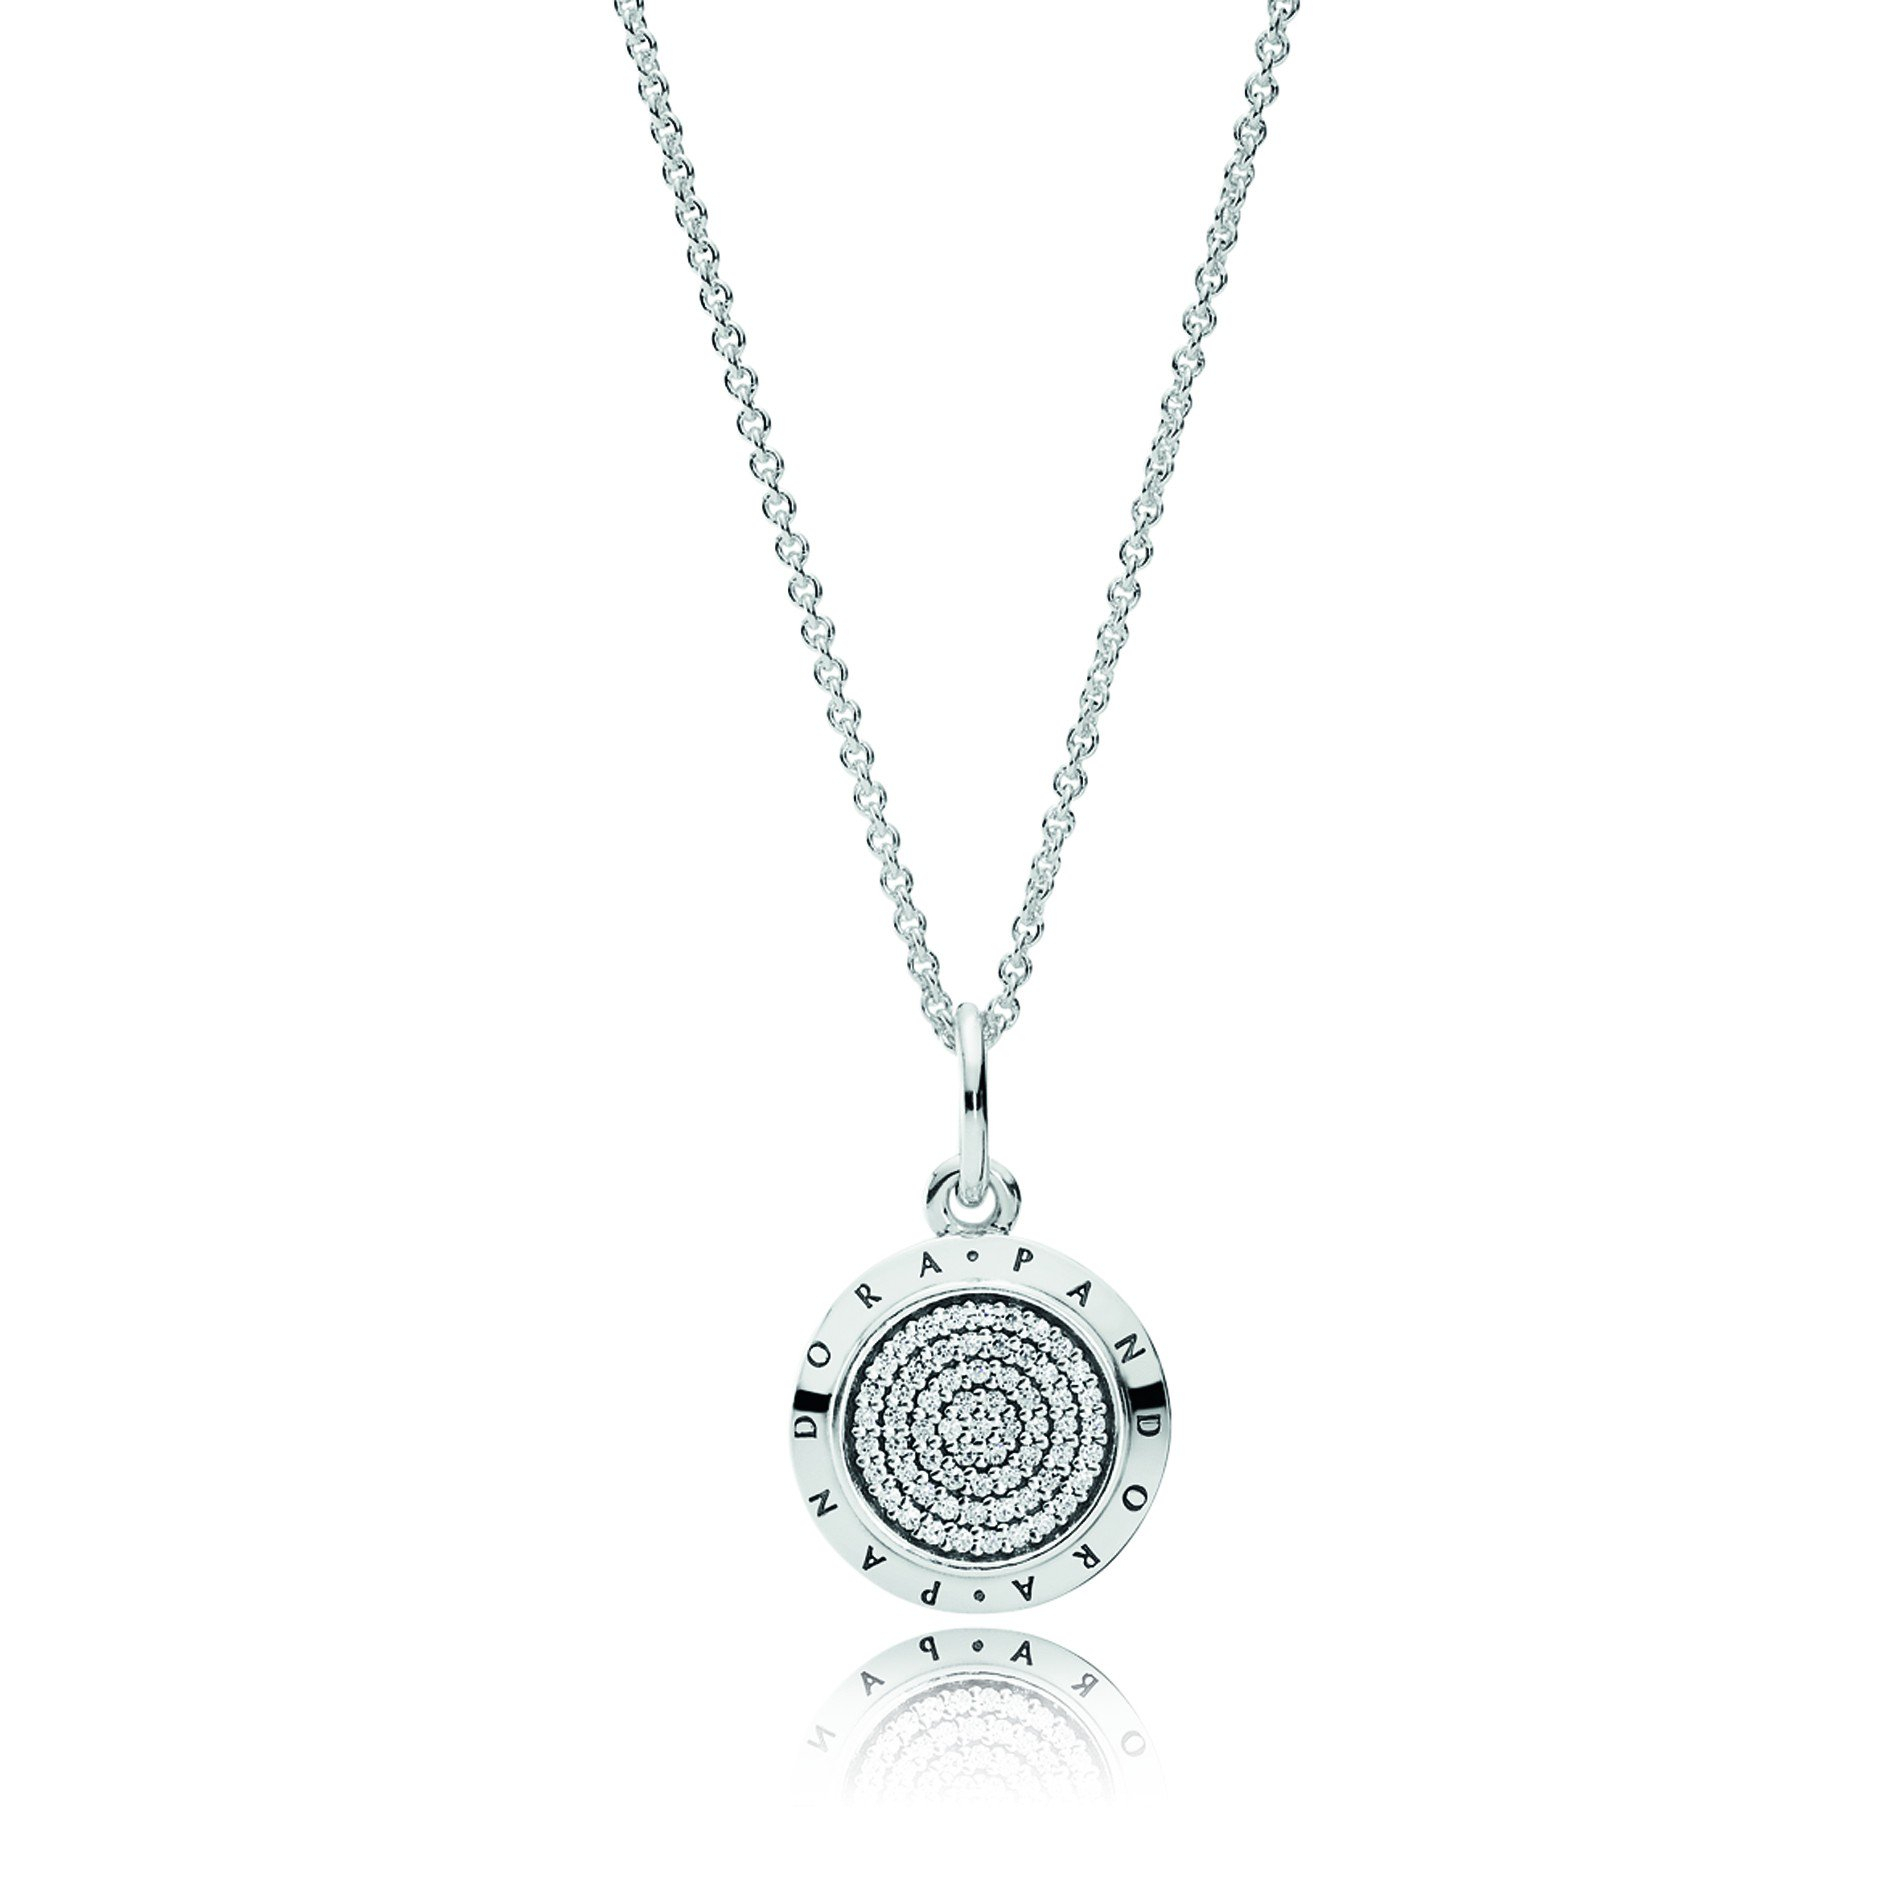 Pandora Signature Necklace, 70cm For Most Recent Pandora Logo Circle Necklaces (View 8 of 25)